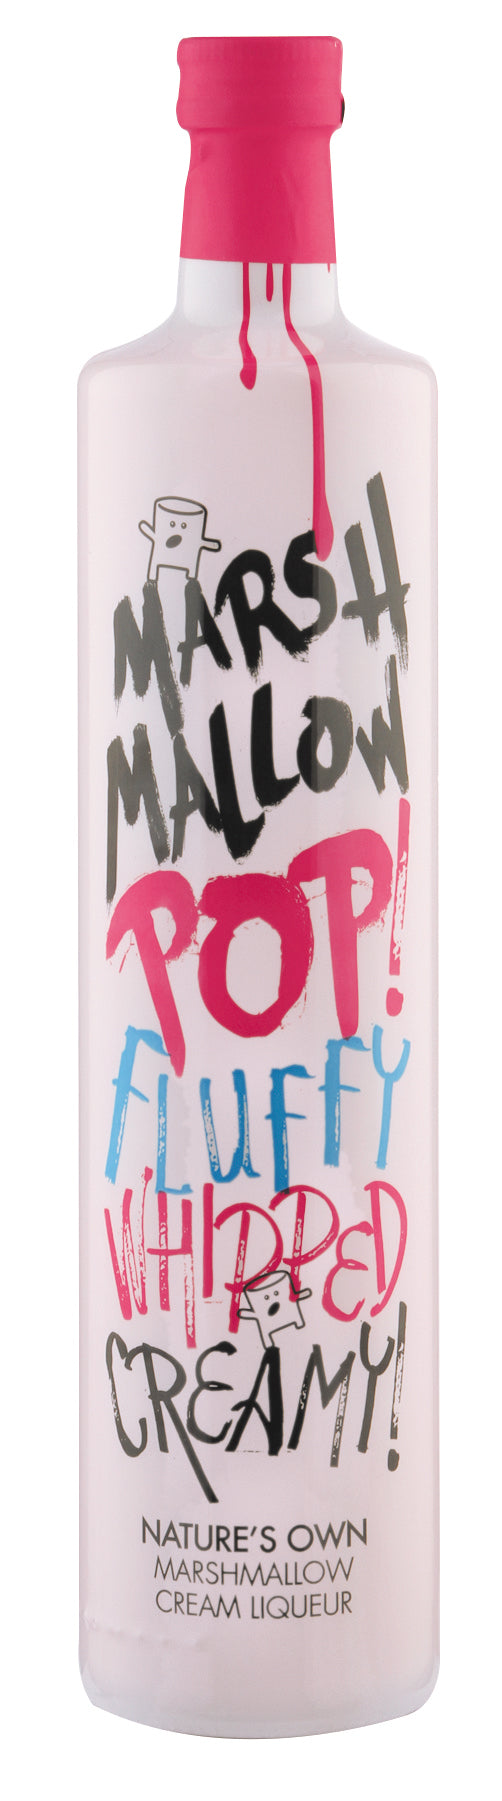 Marshmallow POP! Cream Liqueur